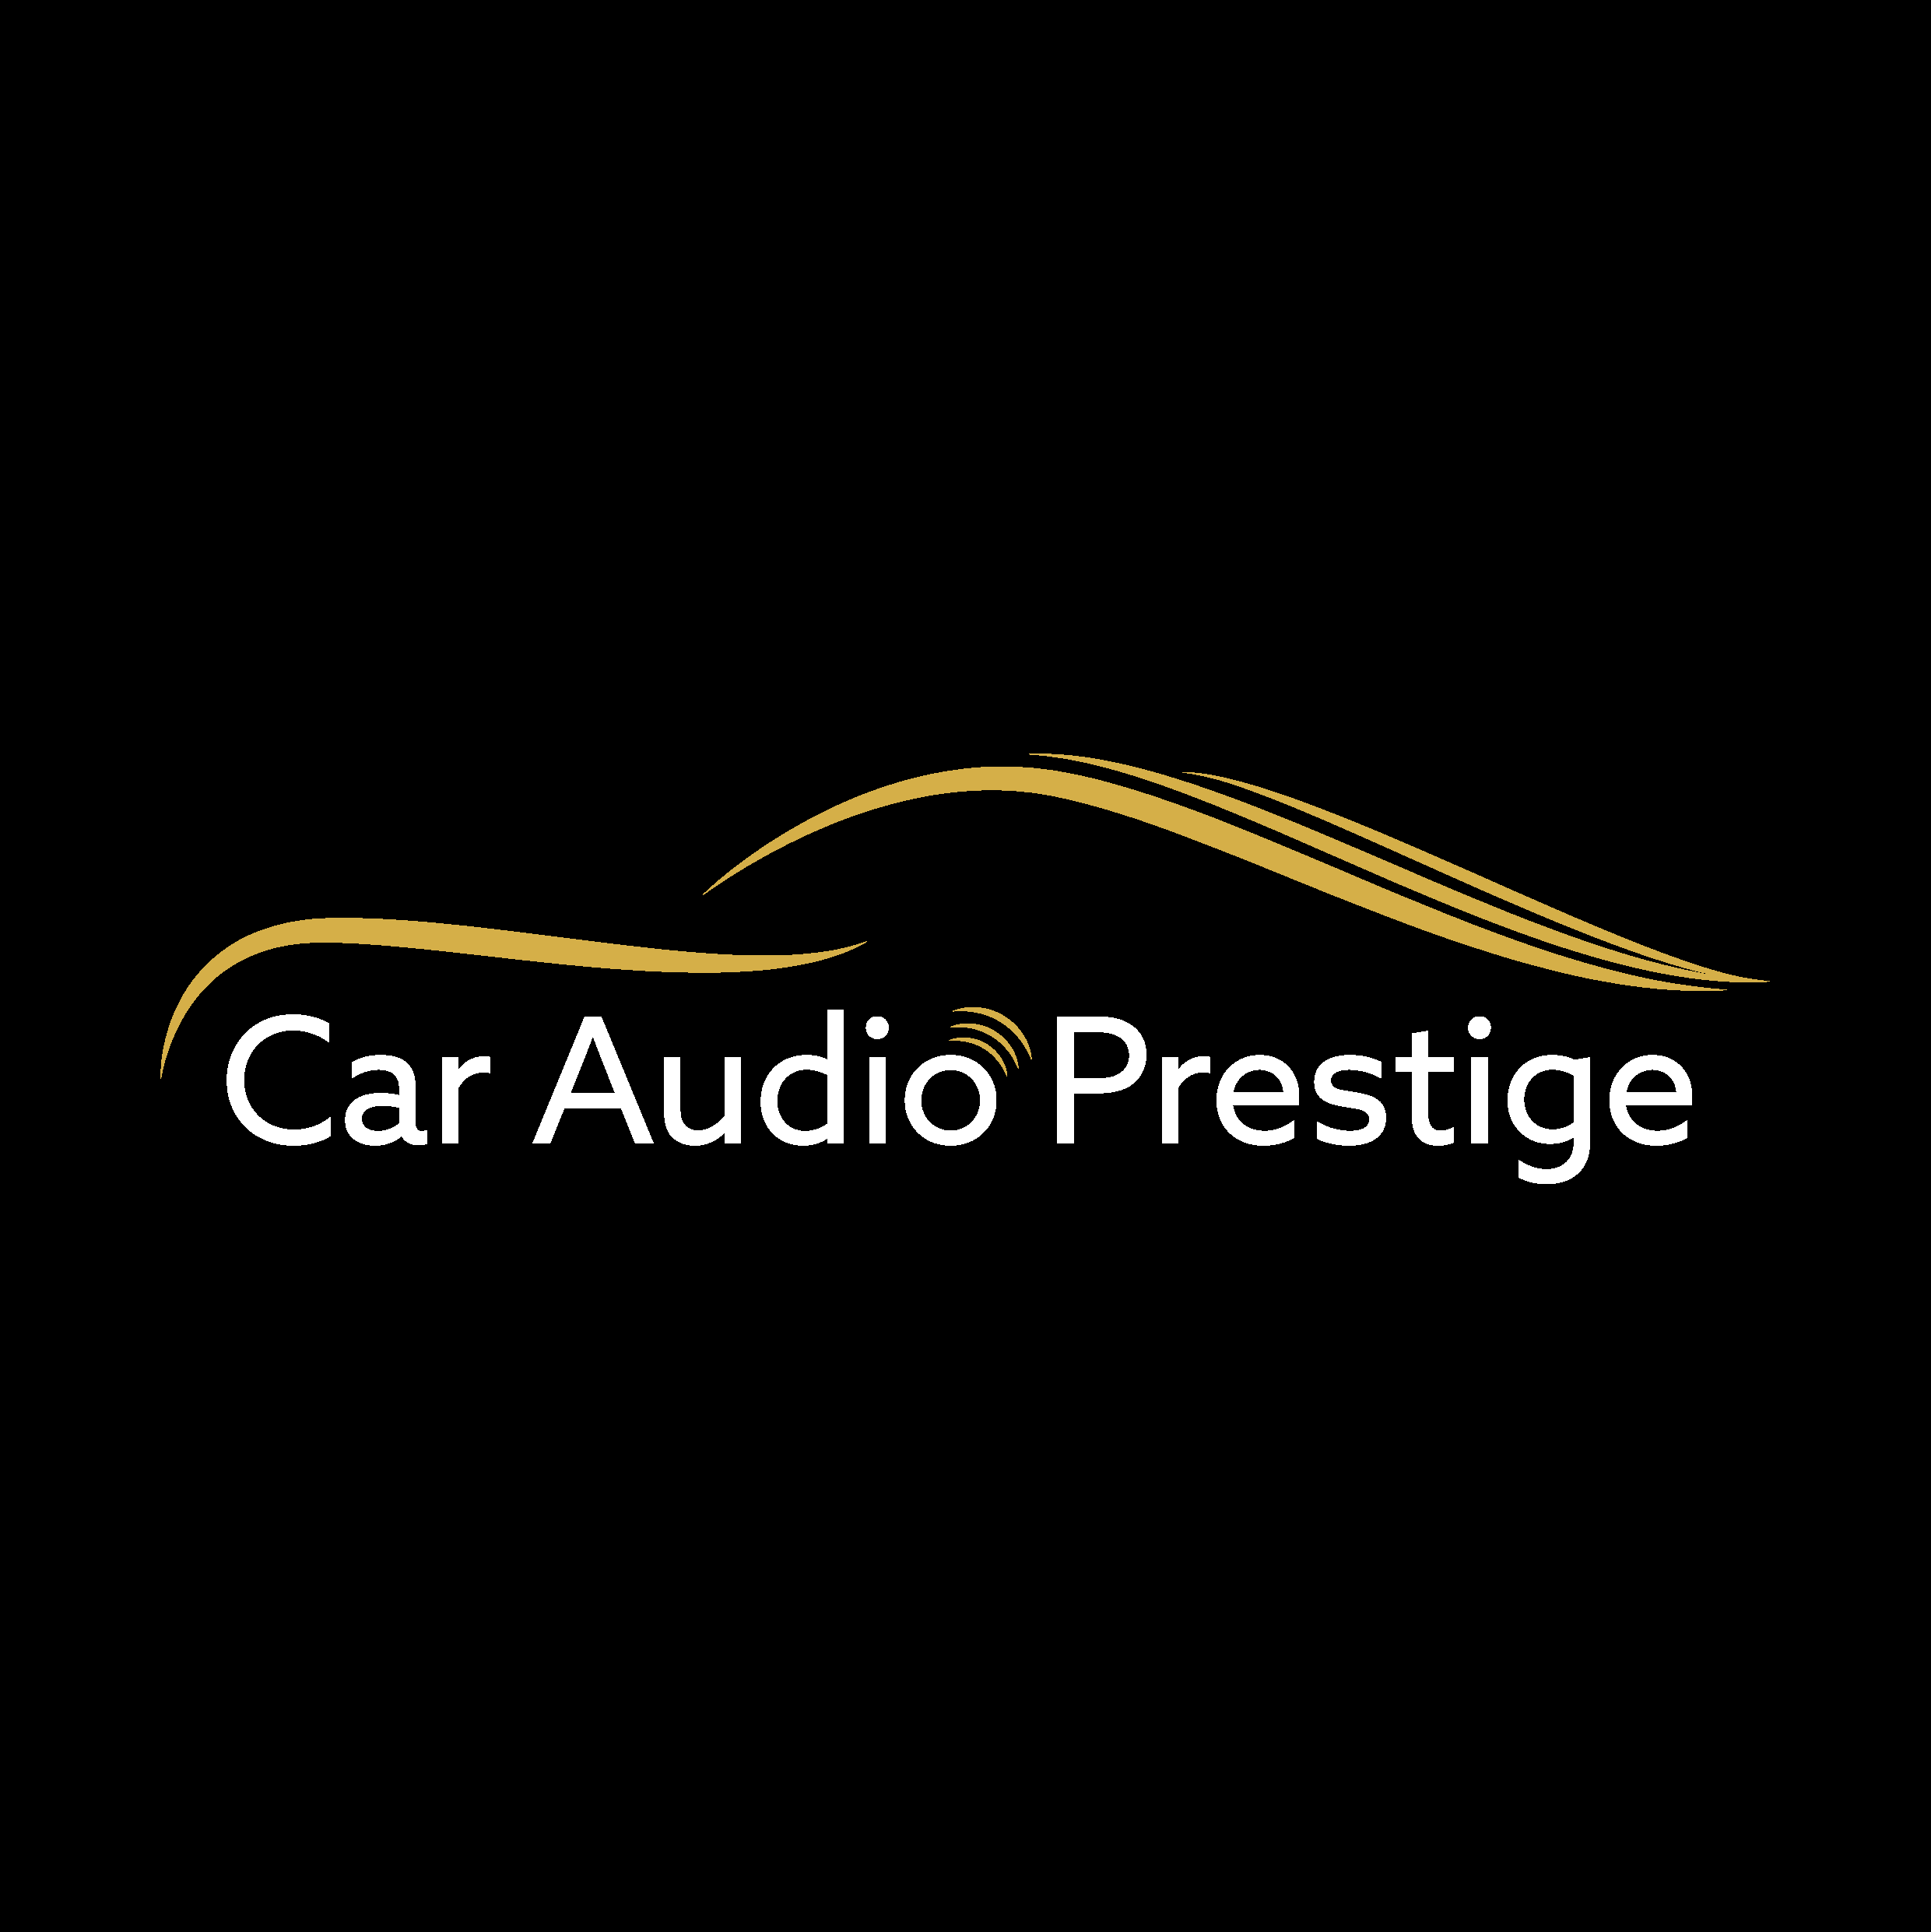 Car Audio Prestige